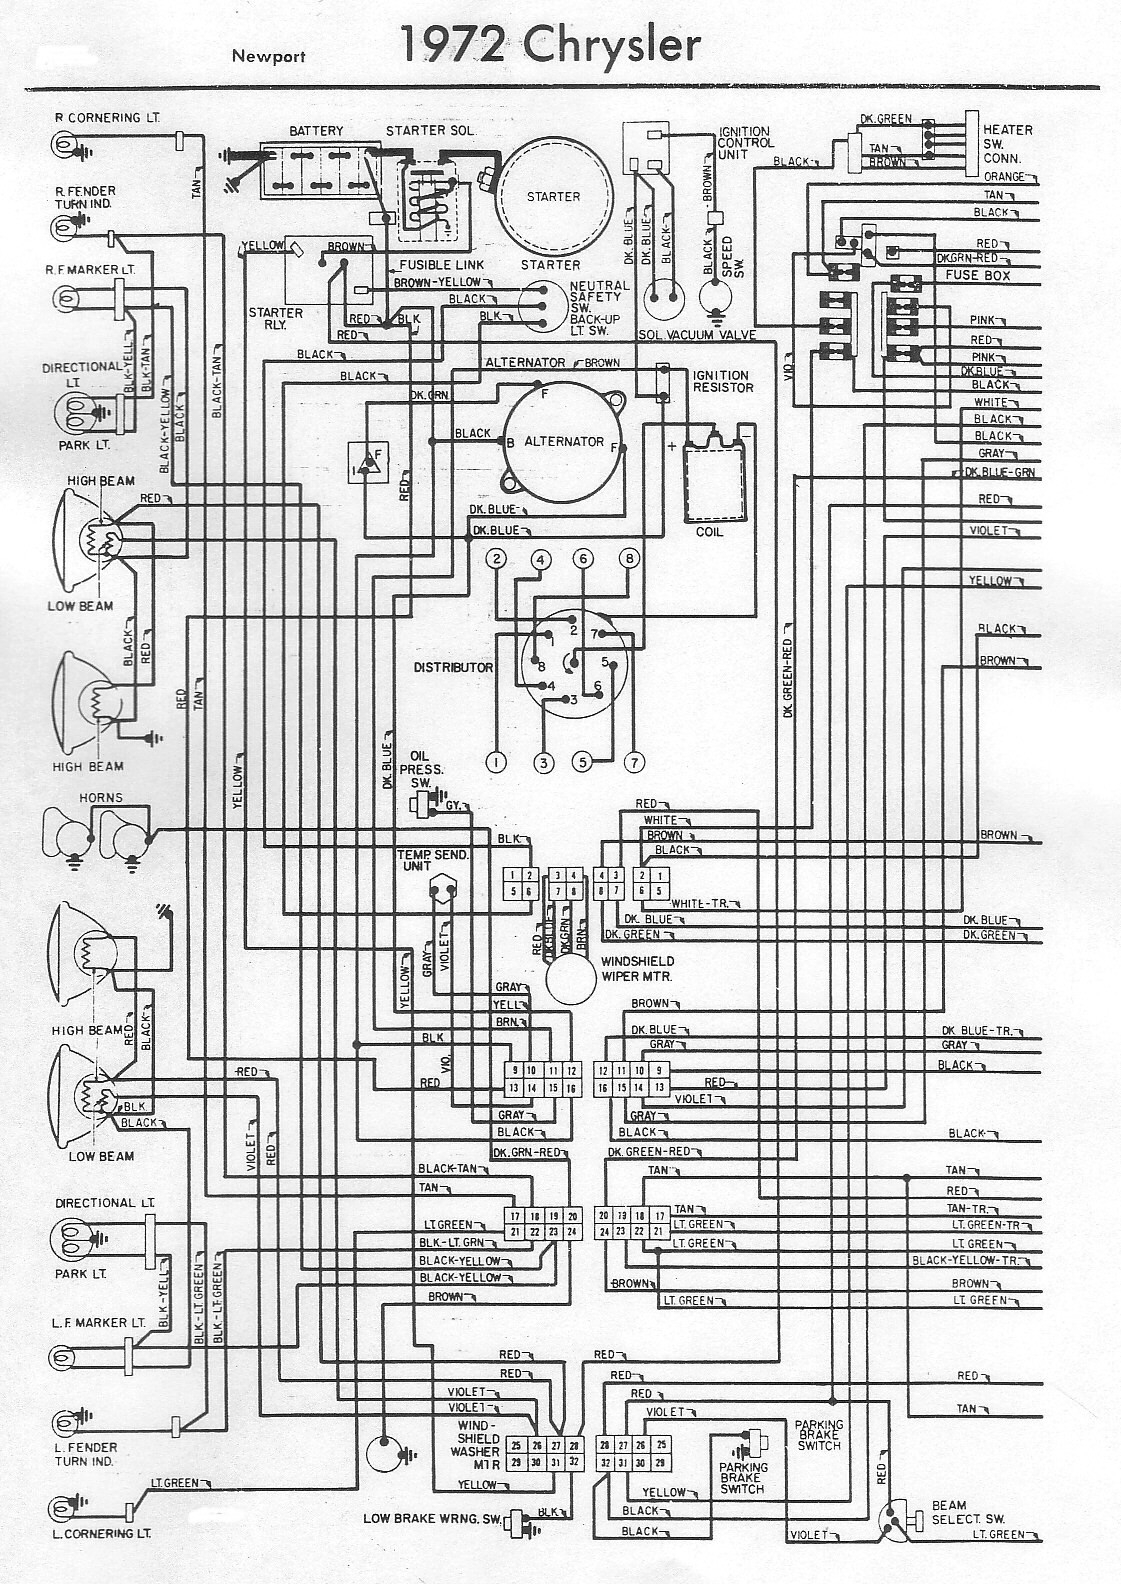 chrysler wiring diagrams schematics xbox 360 headset diagram 1972 newport electrical all